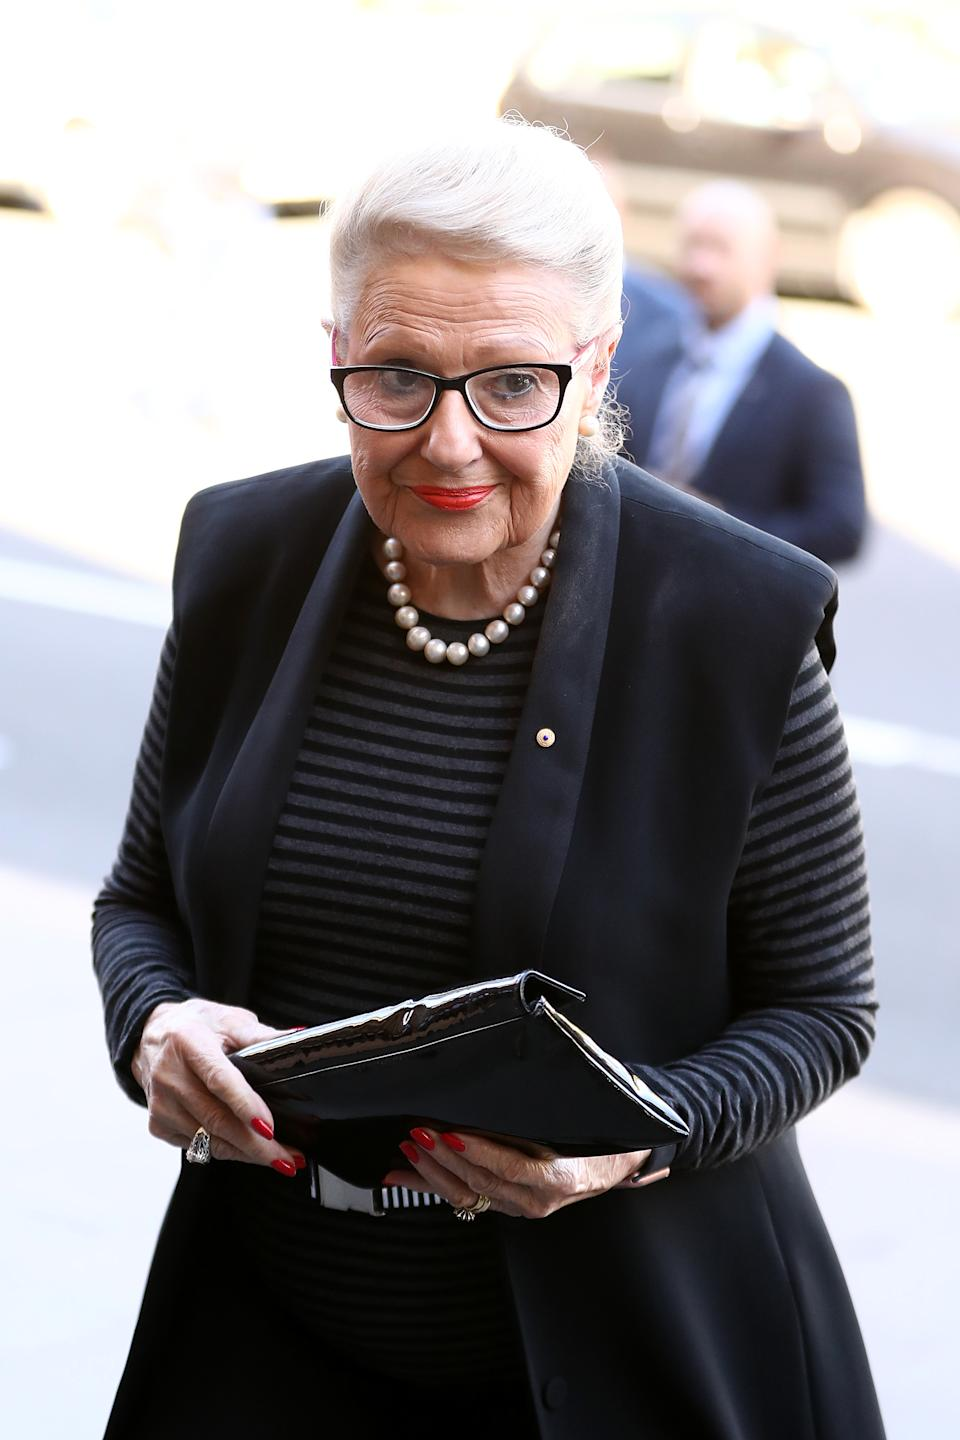 Bronwyn Bishop attends the State Funeral for Carla Zampatti at St Mary's Cathedral on April 15, 2021 in Sydney, Australia.